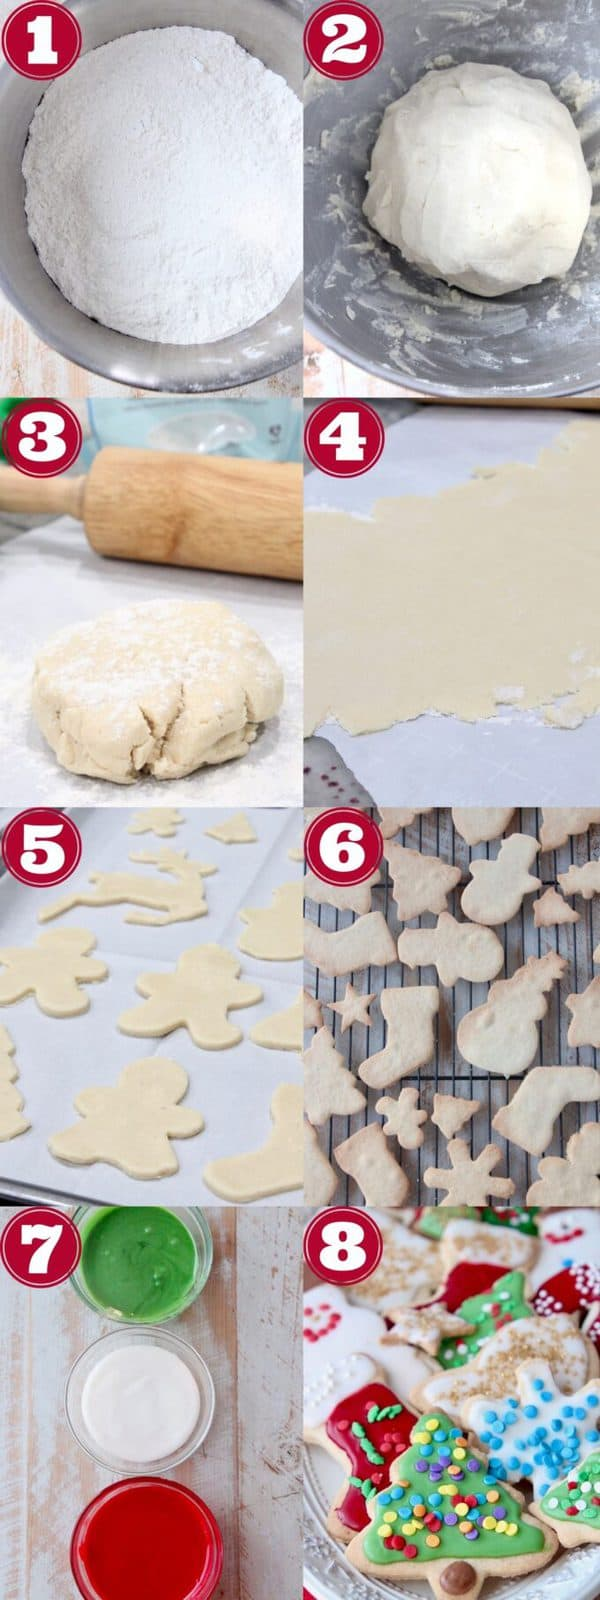 collage of images showing how to make gluten free sugar cookies